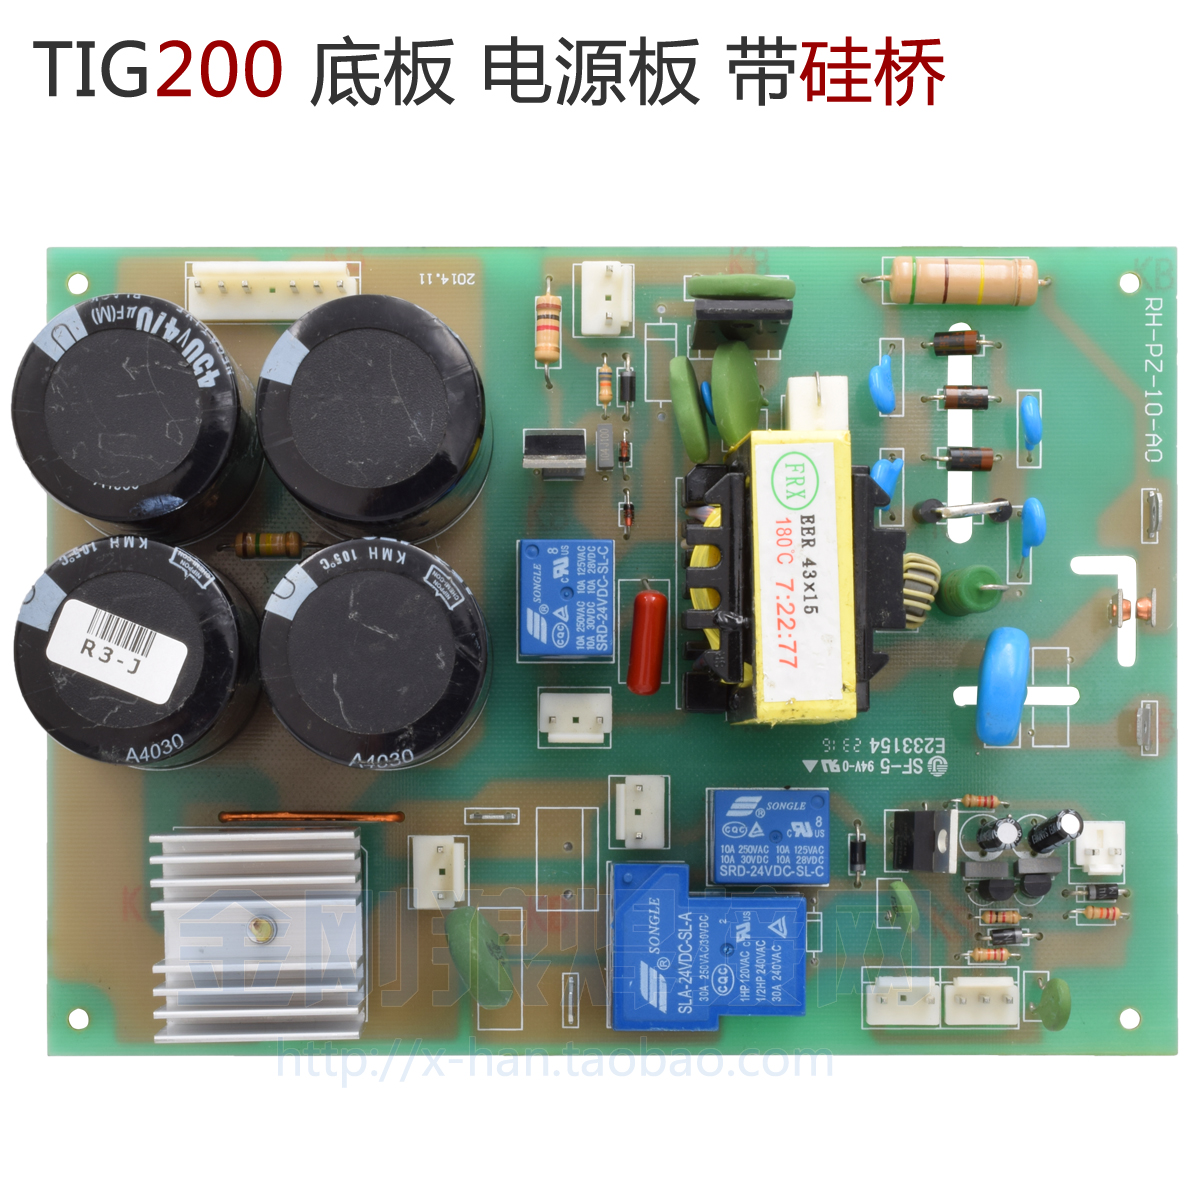 все цены на TIG200 Inverter Welding Machine Base Board Power Supply Board High Frequency Arc Ignition Plate High Pressure Plate онлайн